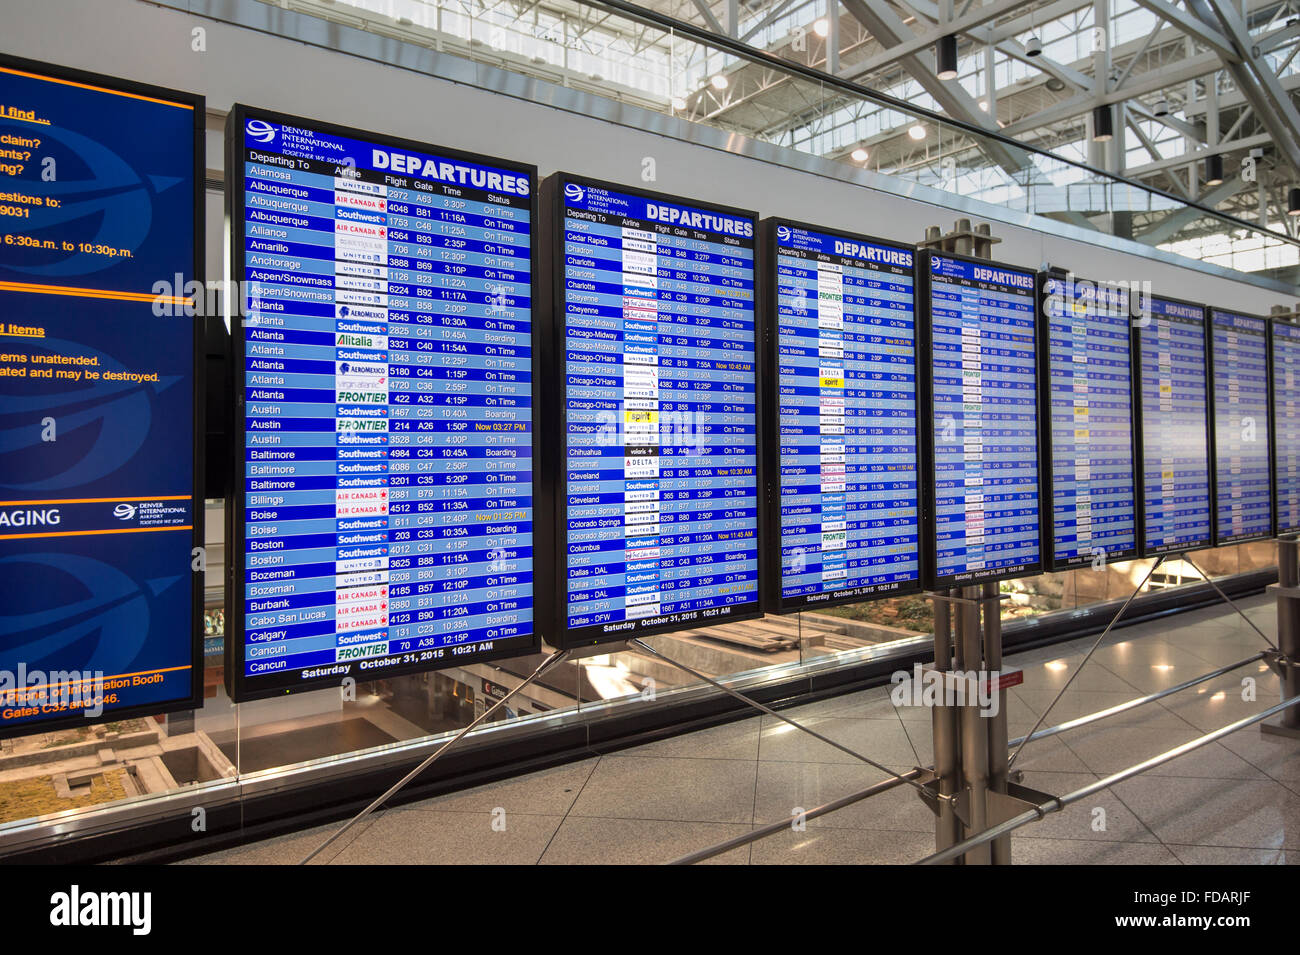 Airport Arrivals & Departures Board - Stock Image